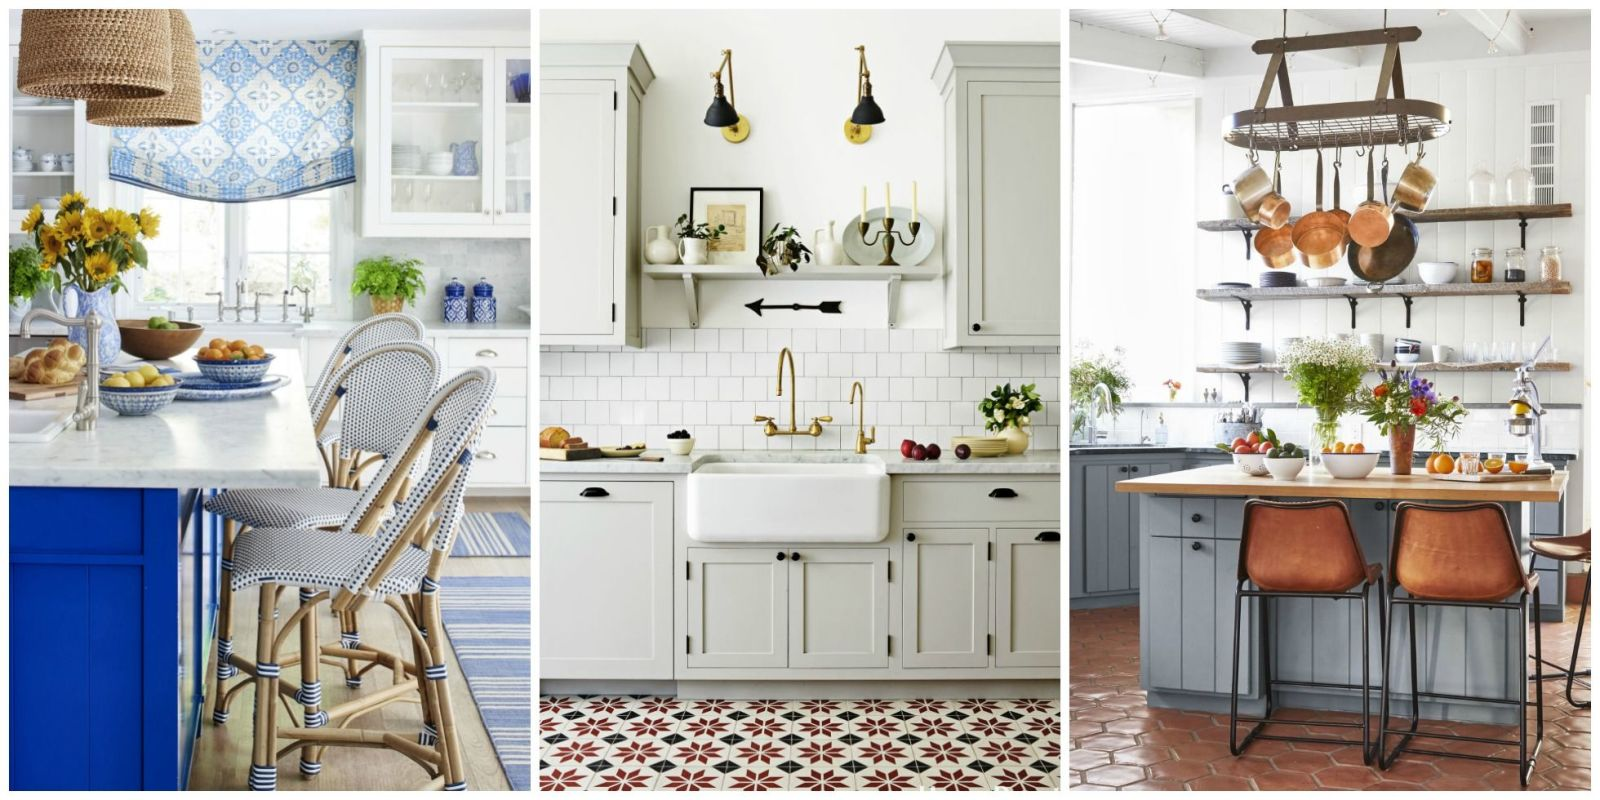 Best Kitchen 2016 10 signs that your kitchen was designed in 2016